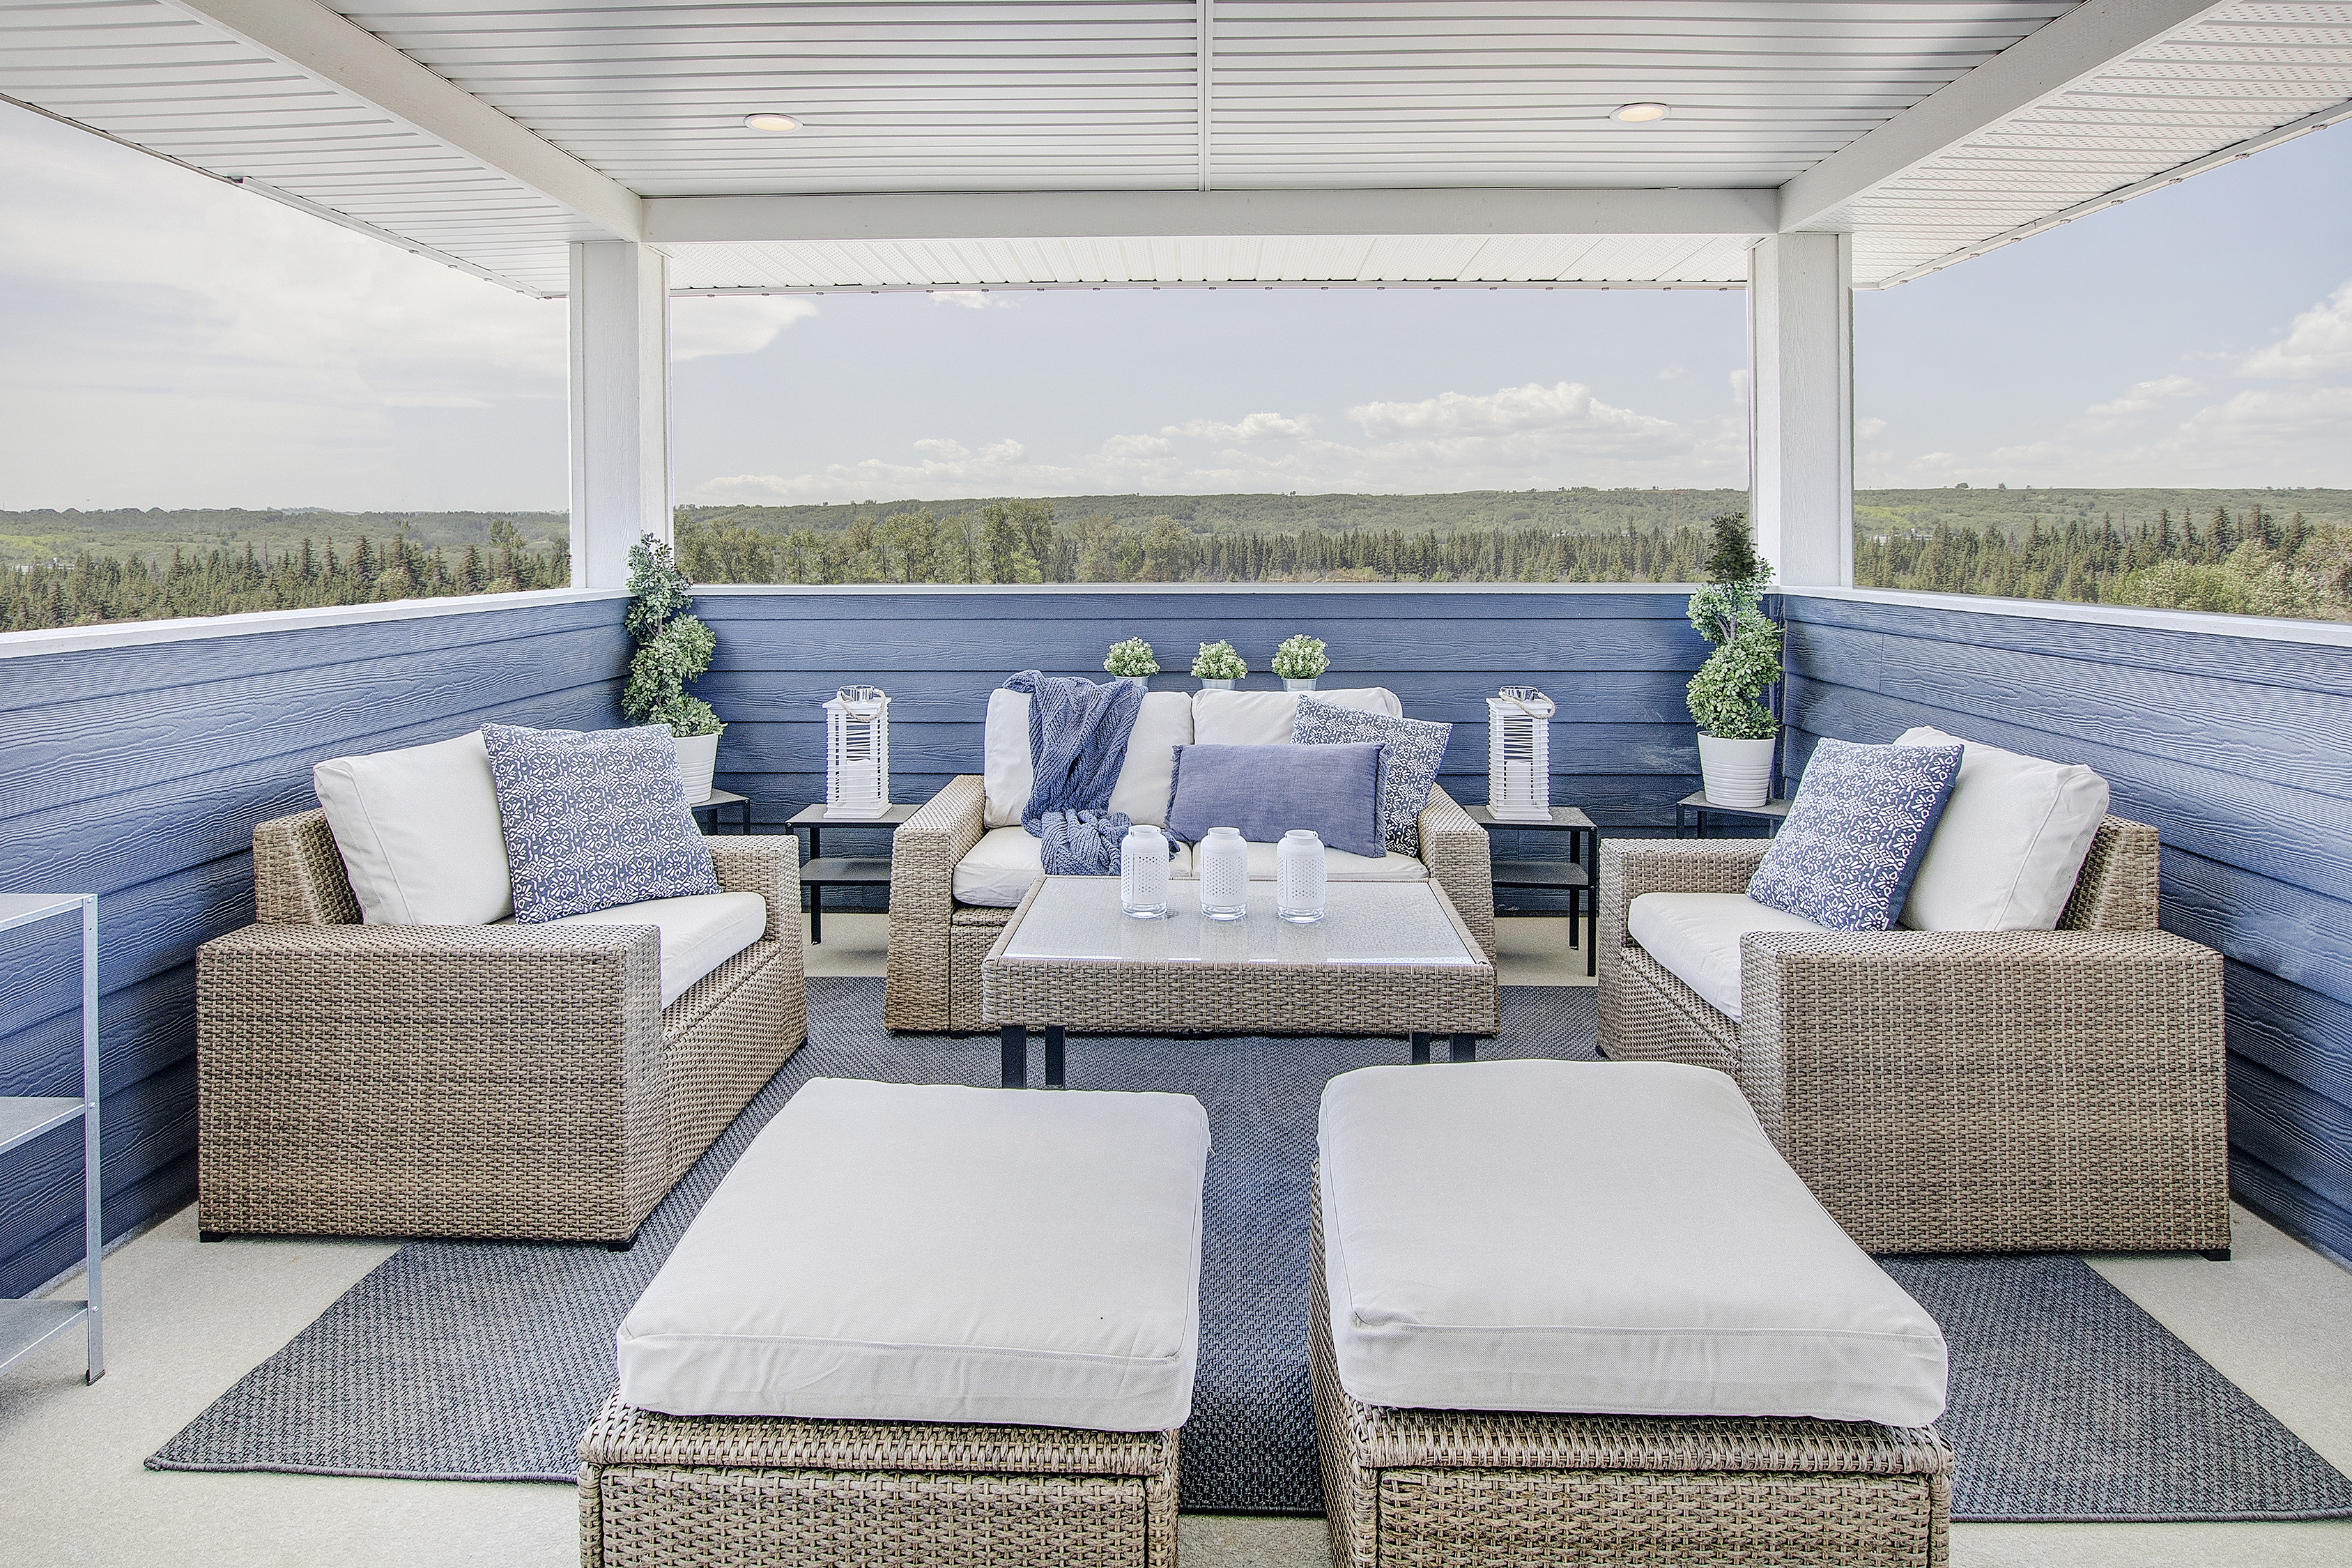 New Showhomes in Cranston's Riverstone